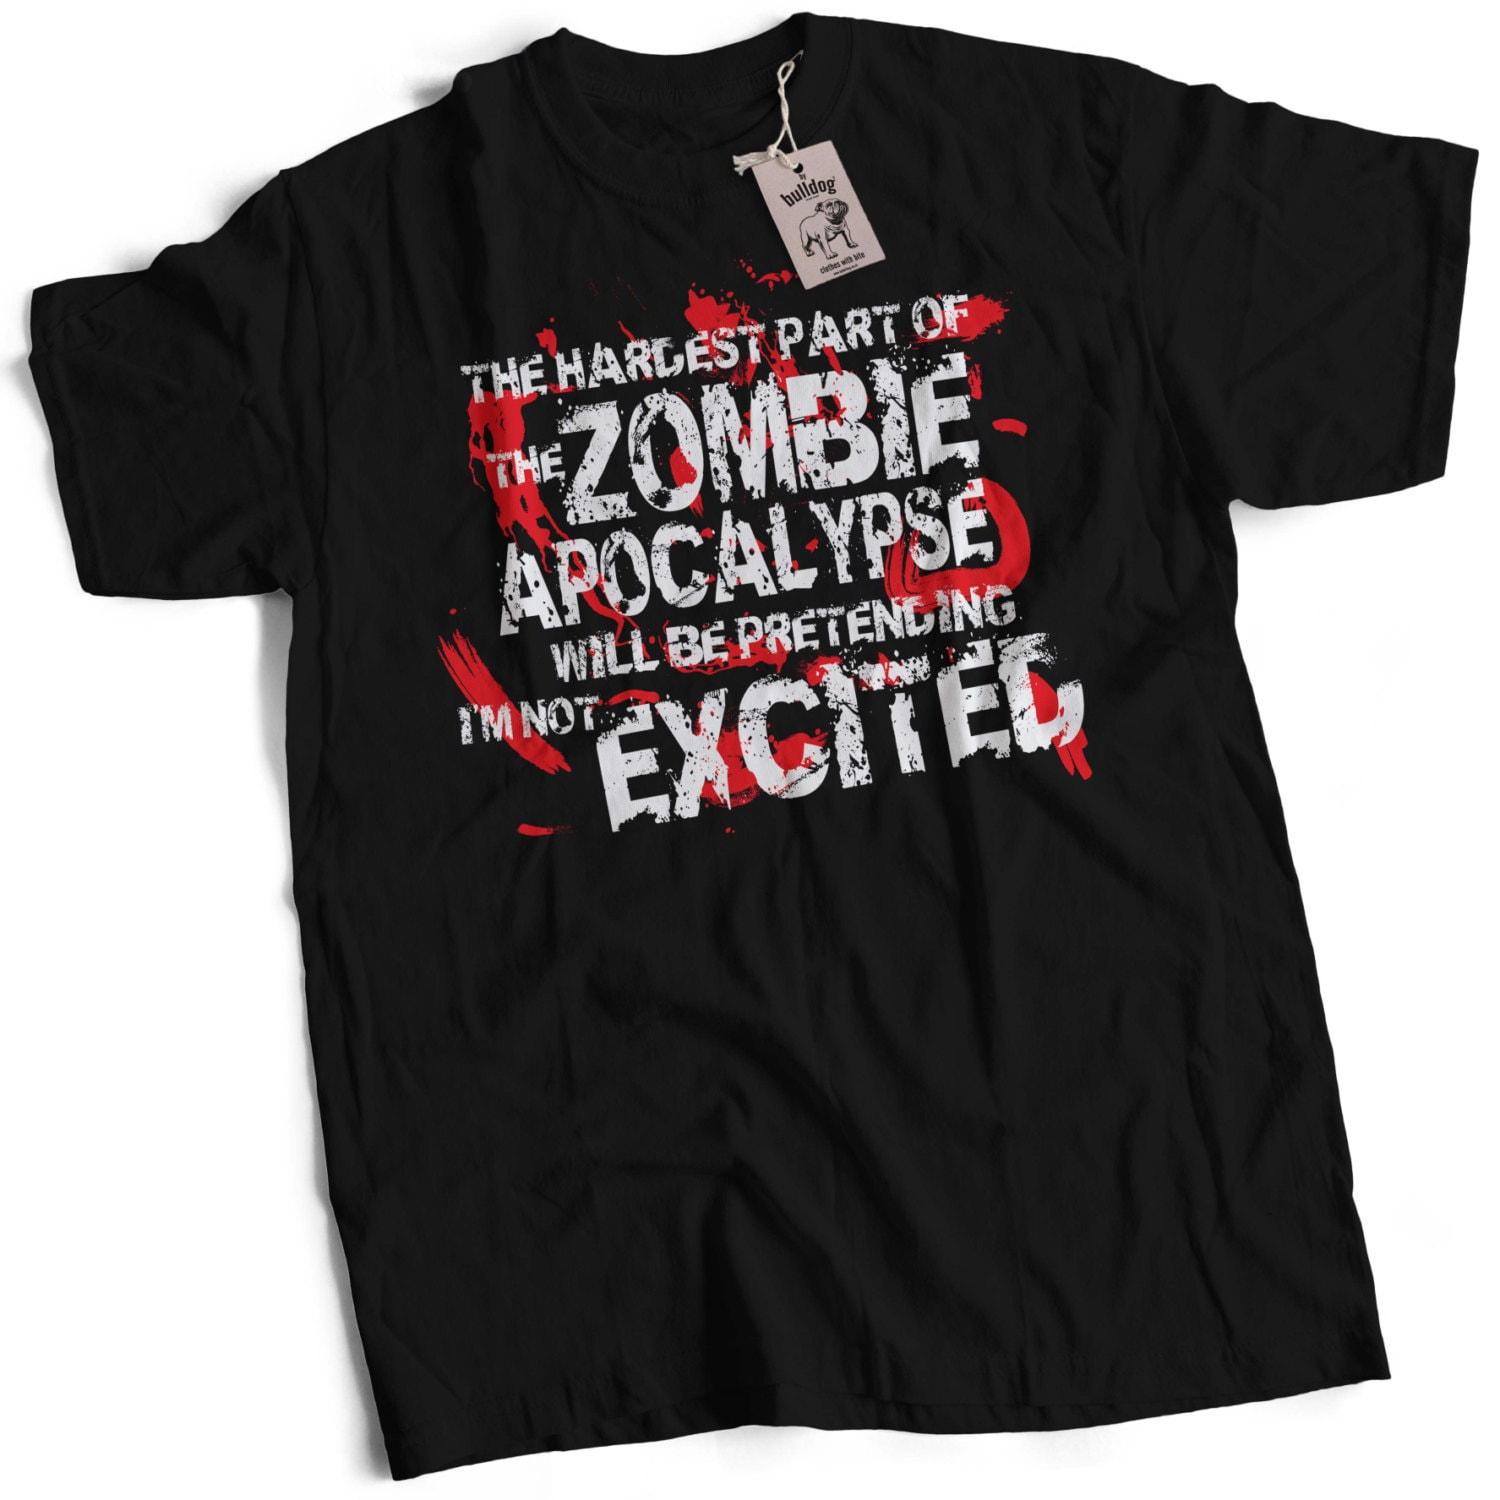 The Hardest Part of The Zombie Apocalypse Mens Premium TShirt Choice of Sizes Small to 3XL